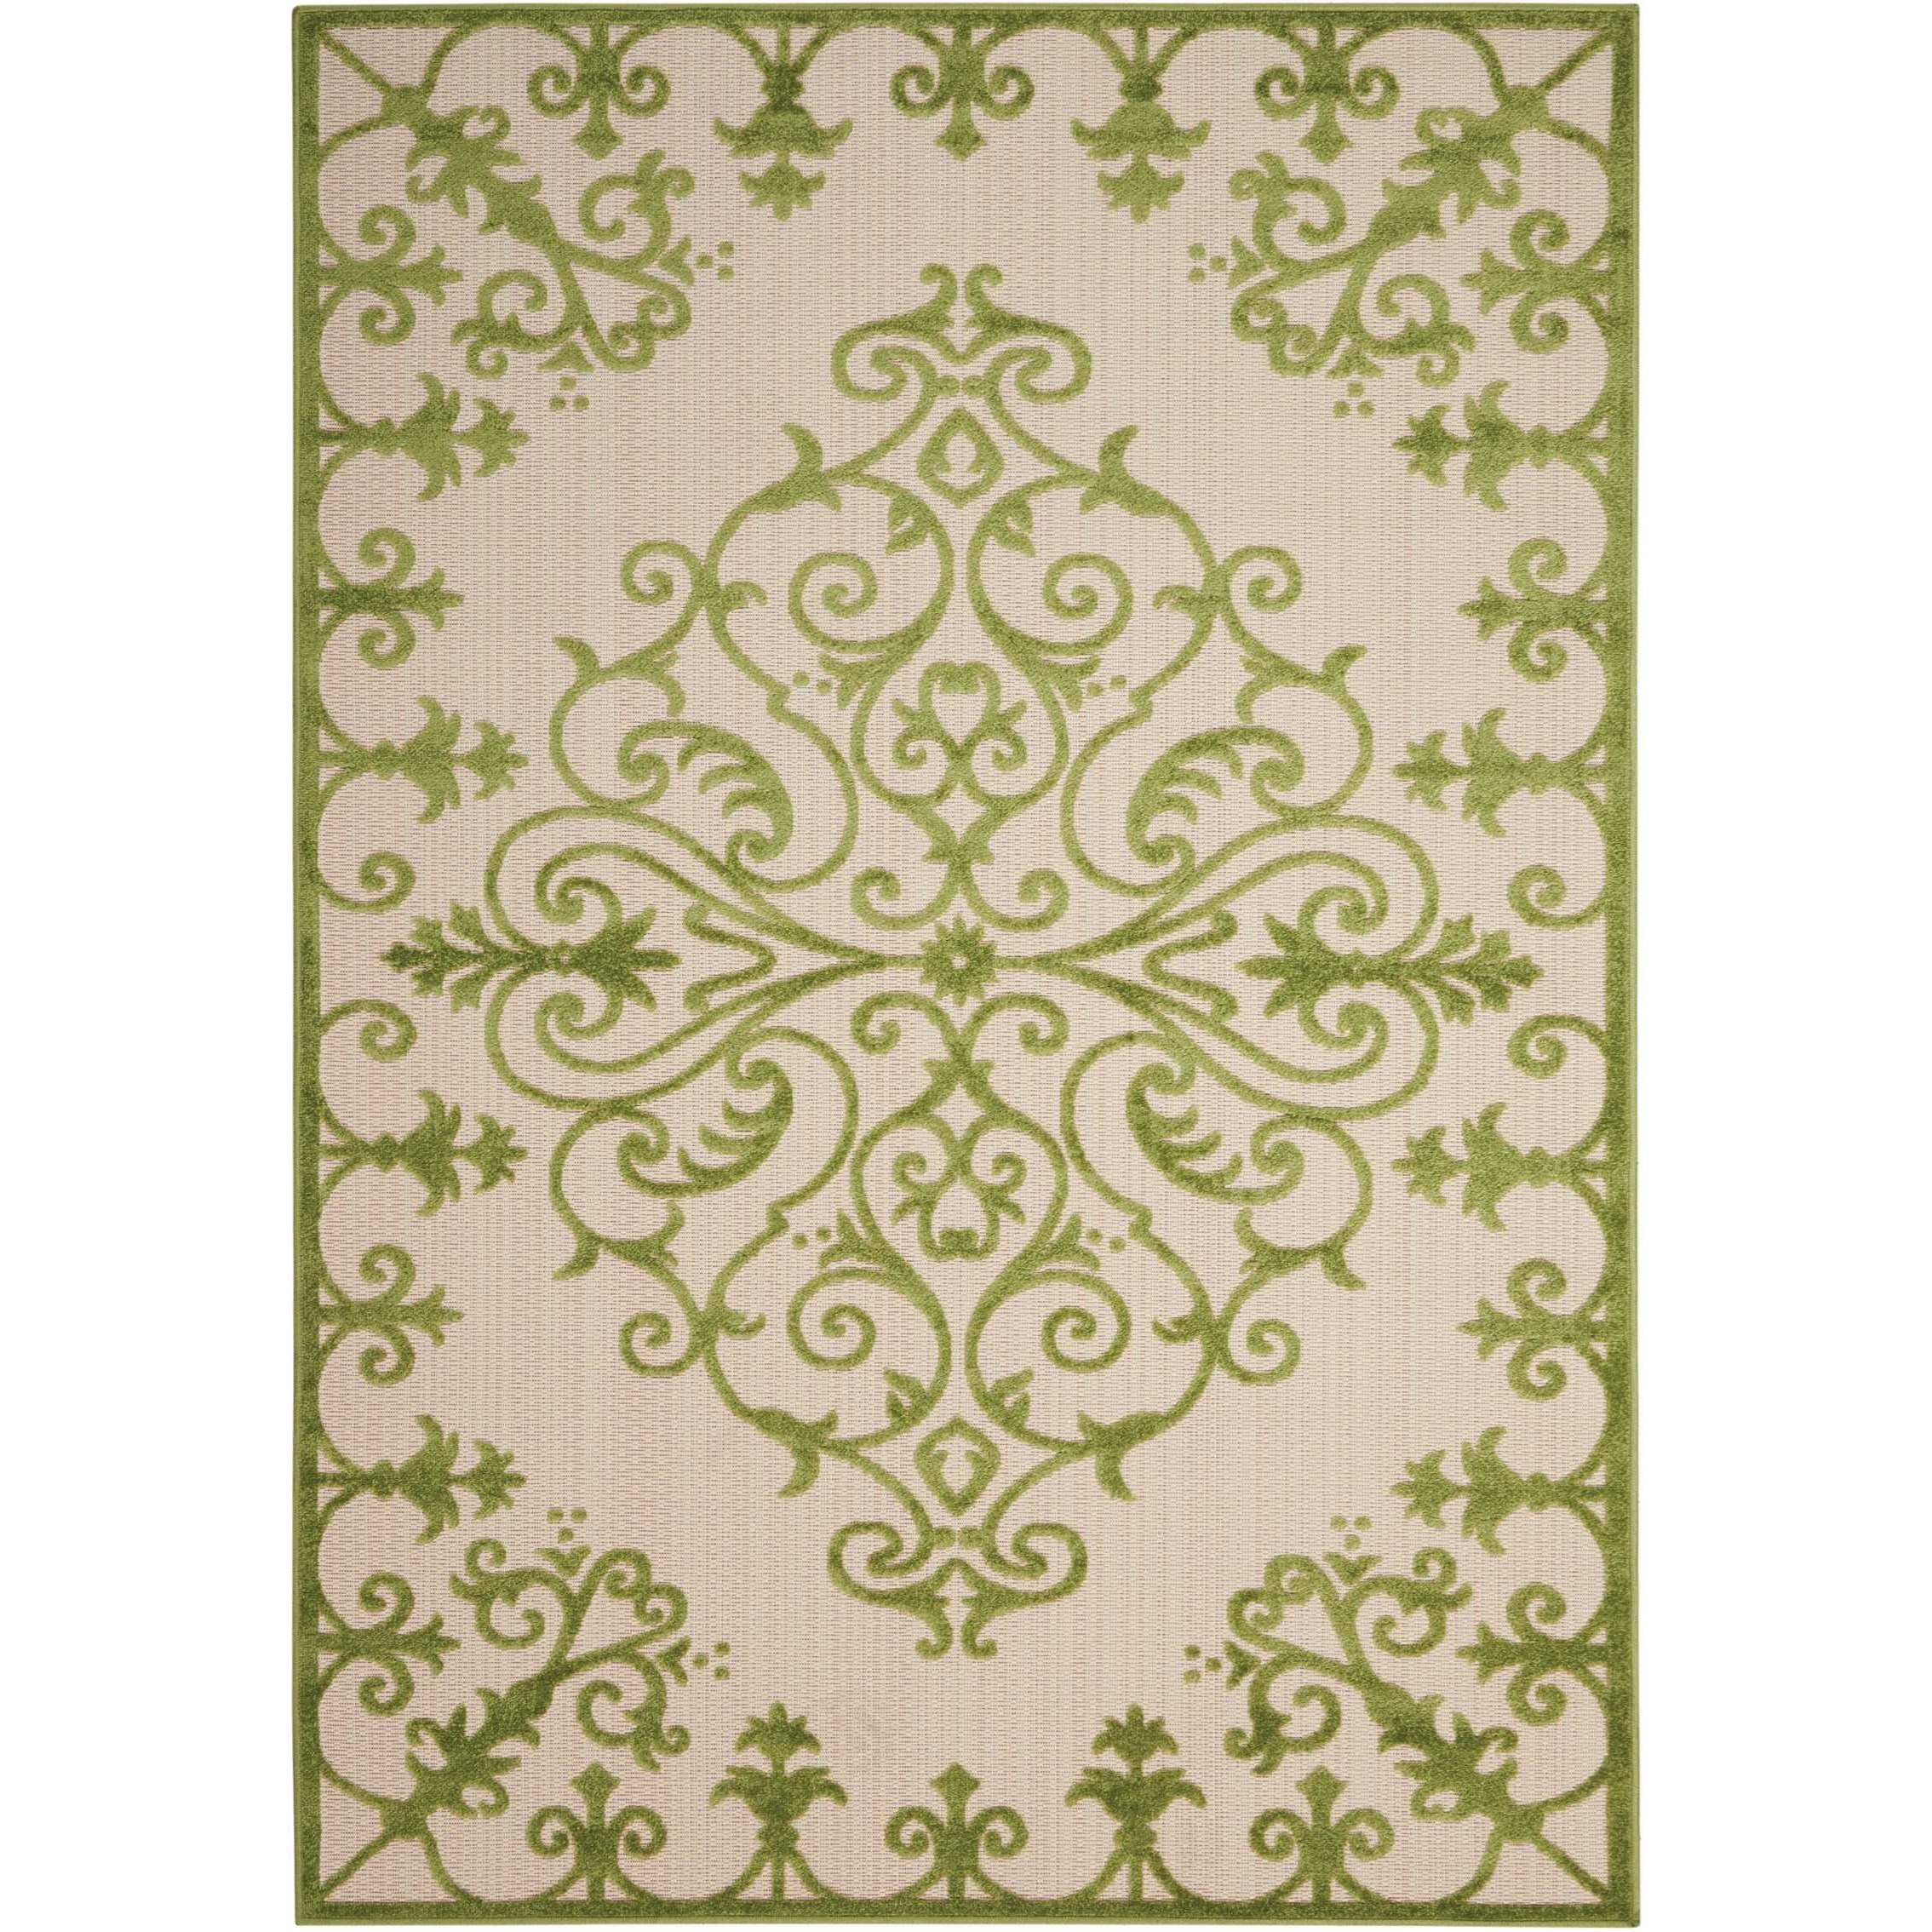 "Aloha 7'10"" x 10'6"" Green Rectangle Rug by Nourison at Home Collections Furniture"